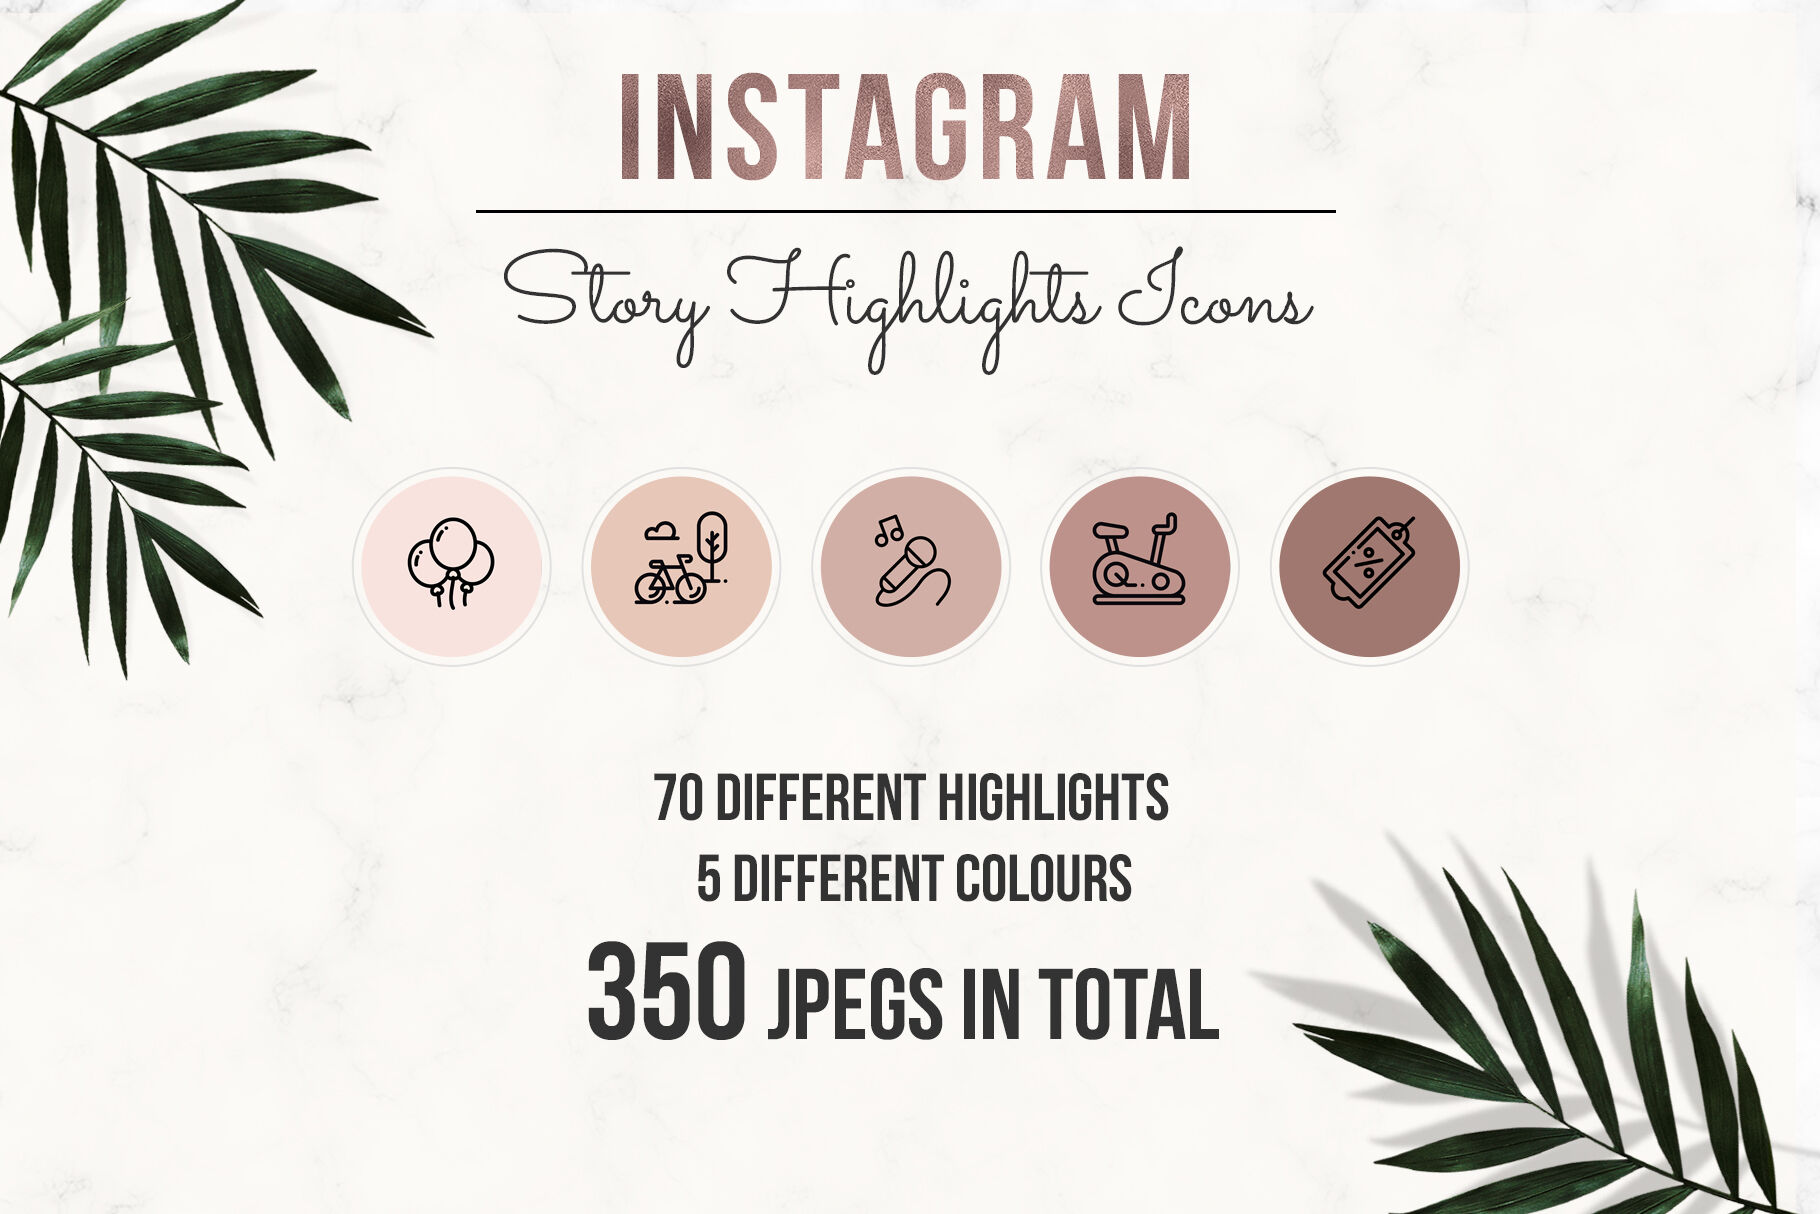 Instagram Story Highlight Icons Instagram Story Highlight Nude